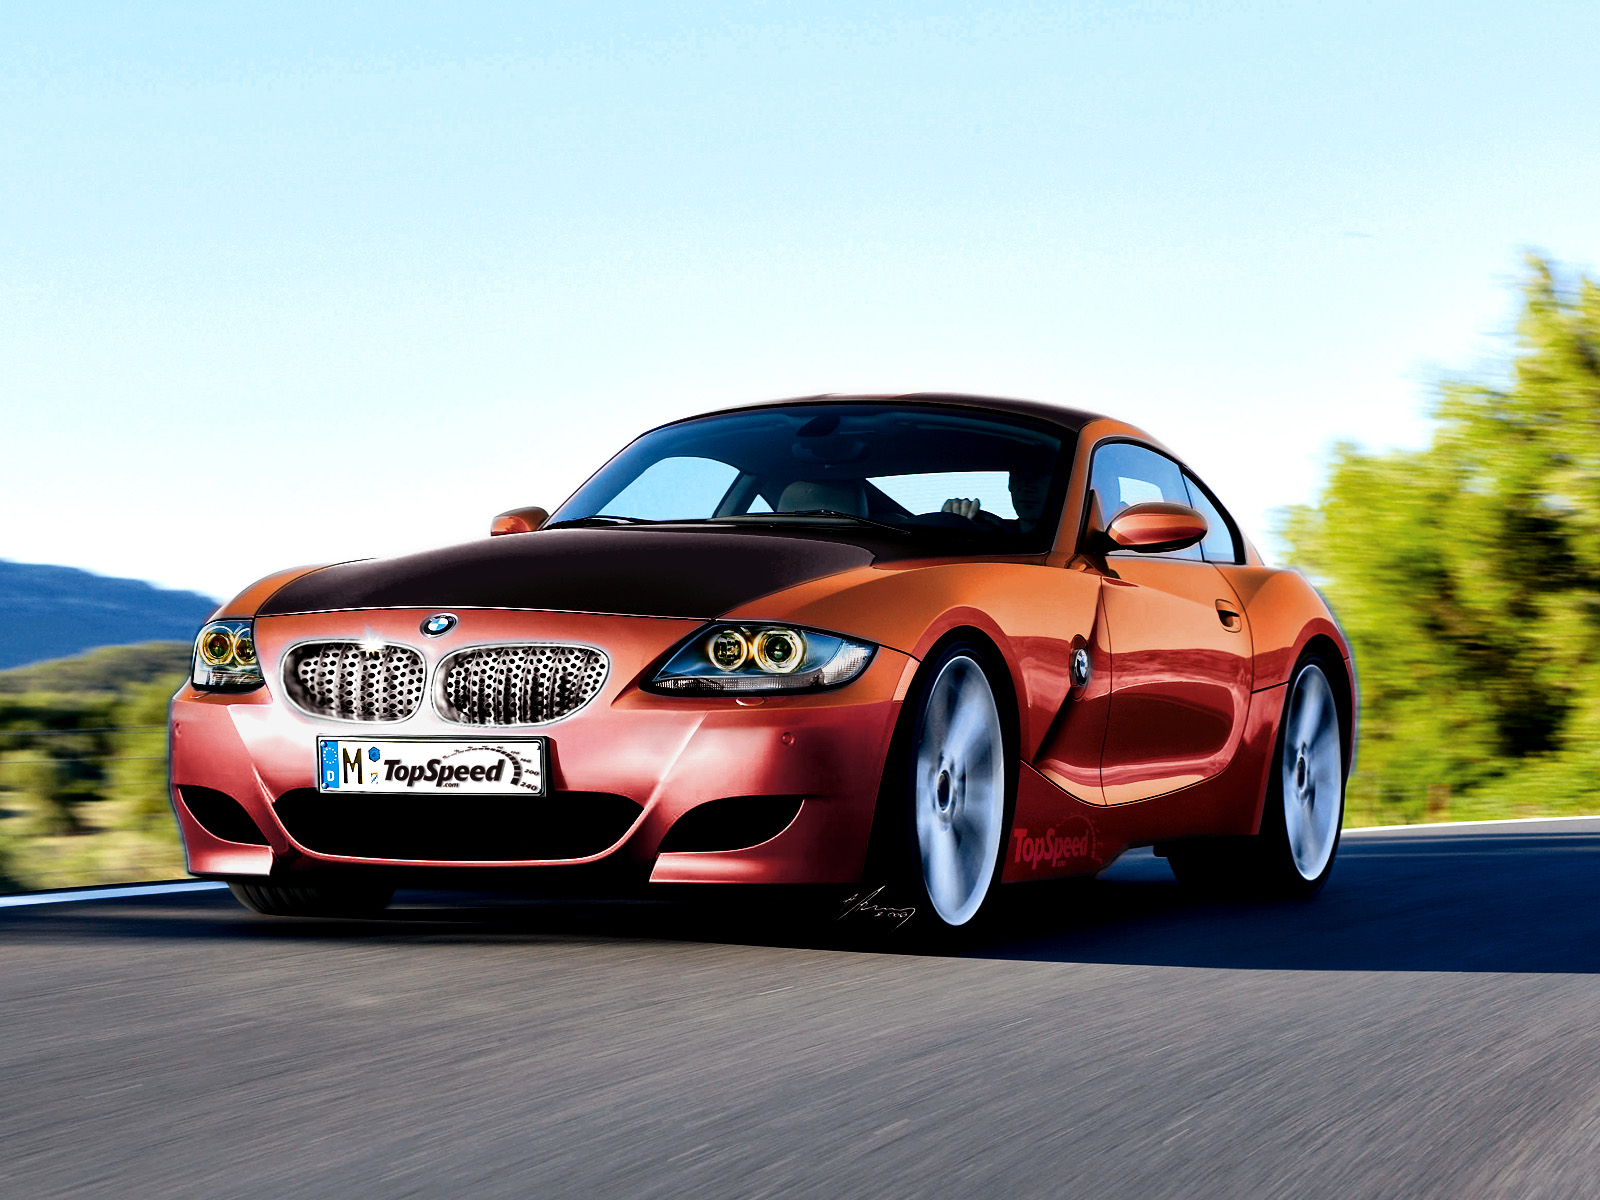 2007 Bmw Z4 M Coupe Gallery 86187 Top Speed